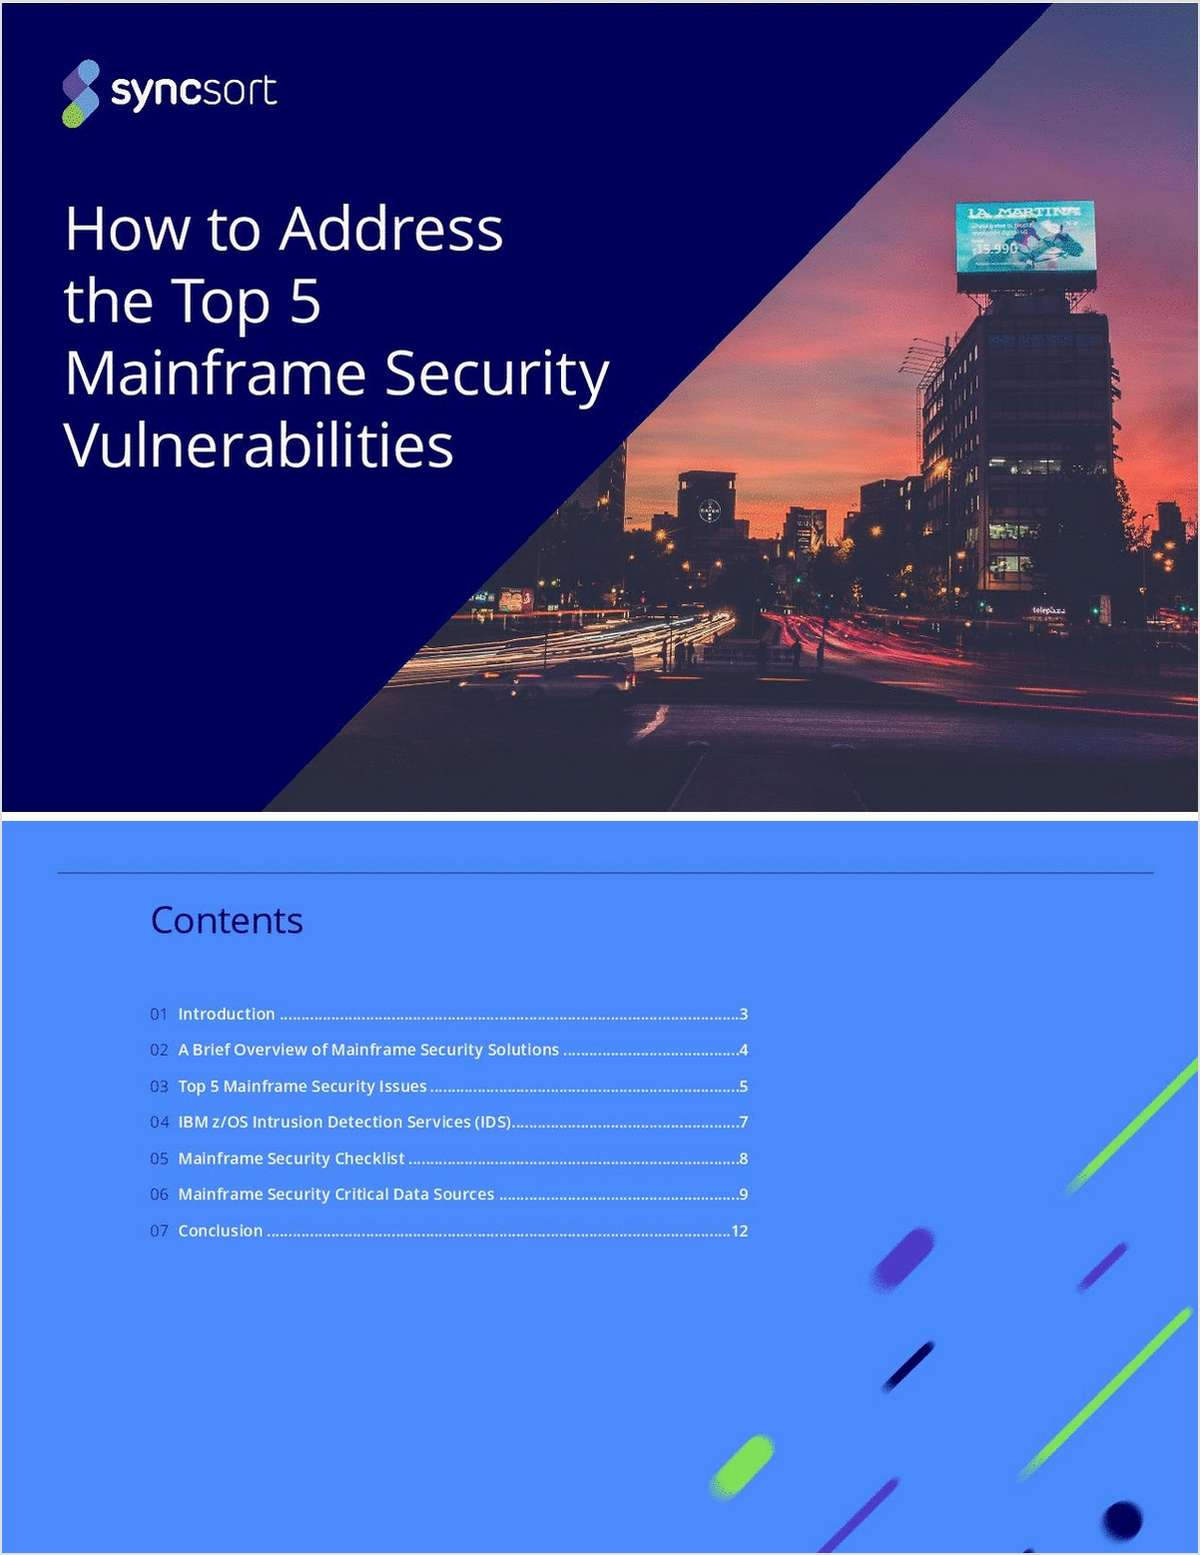 How to Address the Top 5 Mainframe Security Vulnerabilities